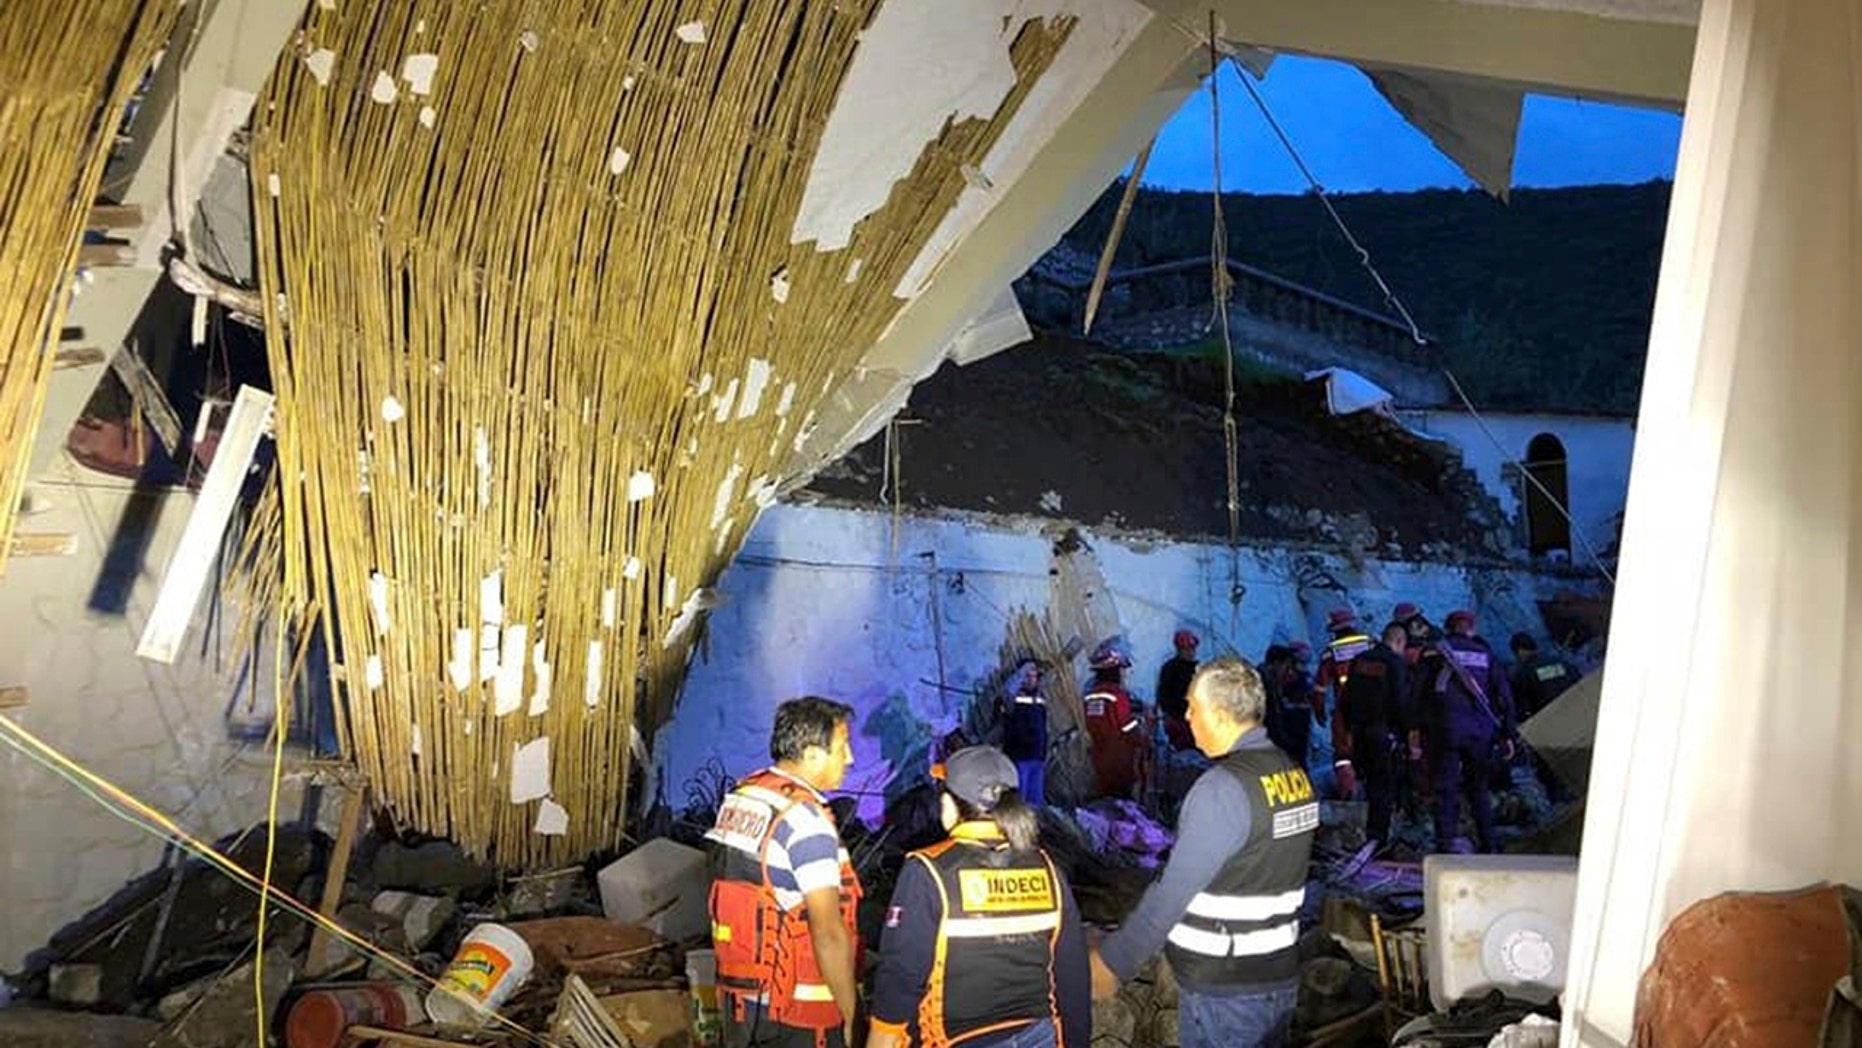 In this photo provide by Abancay police, officers and firefighters stand by a collapsed area of the Alhambra hotel in Abancay, Peru, Sunday, Jan. 27, 2019. (AP Photo/Abancay police via AP)